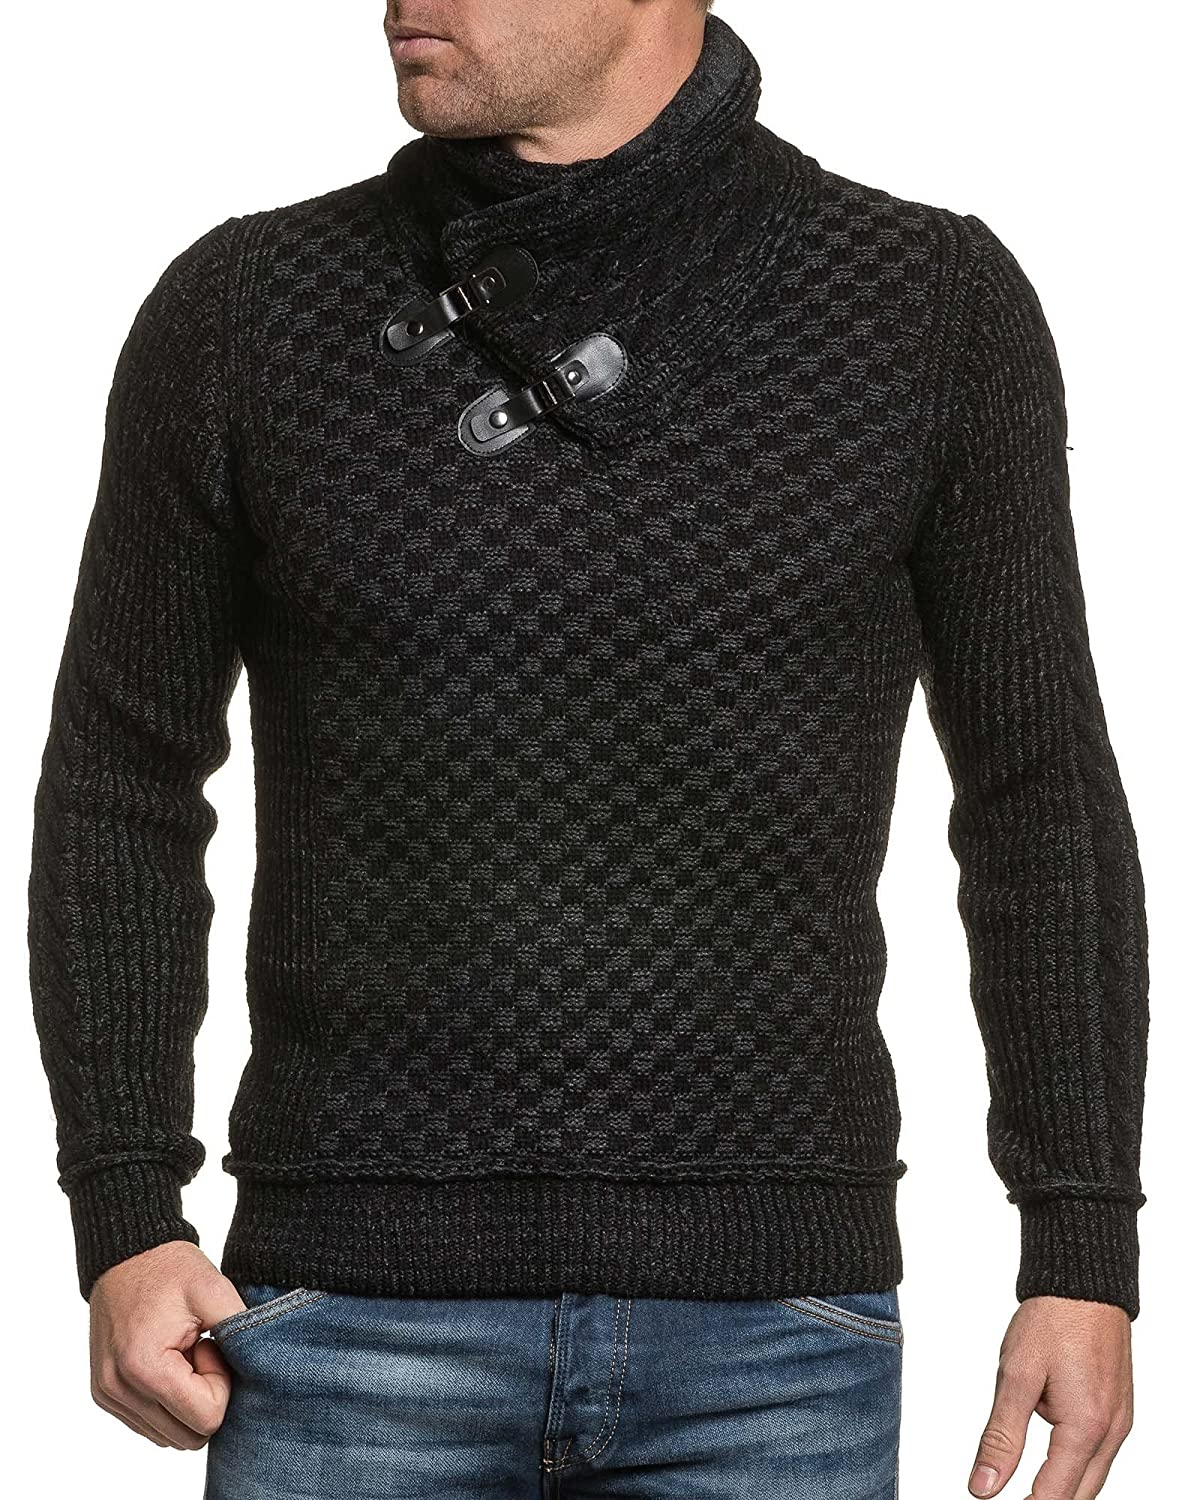 BLZ jeans - mesh black man sweater thick collar